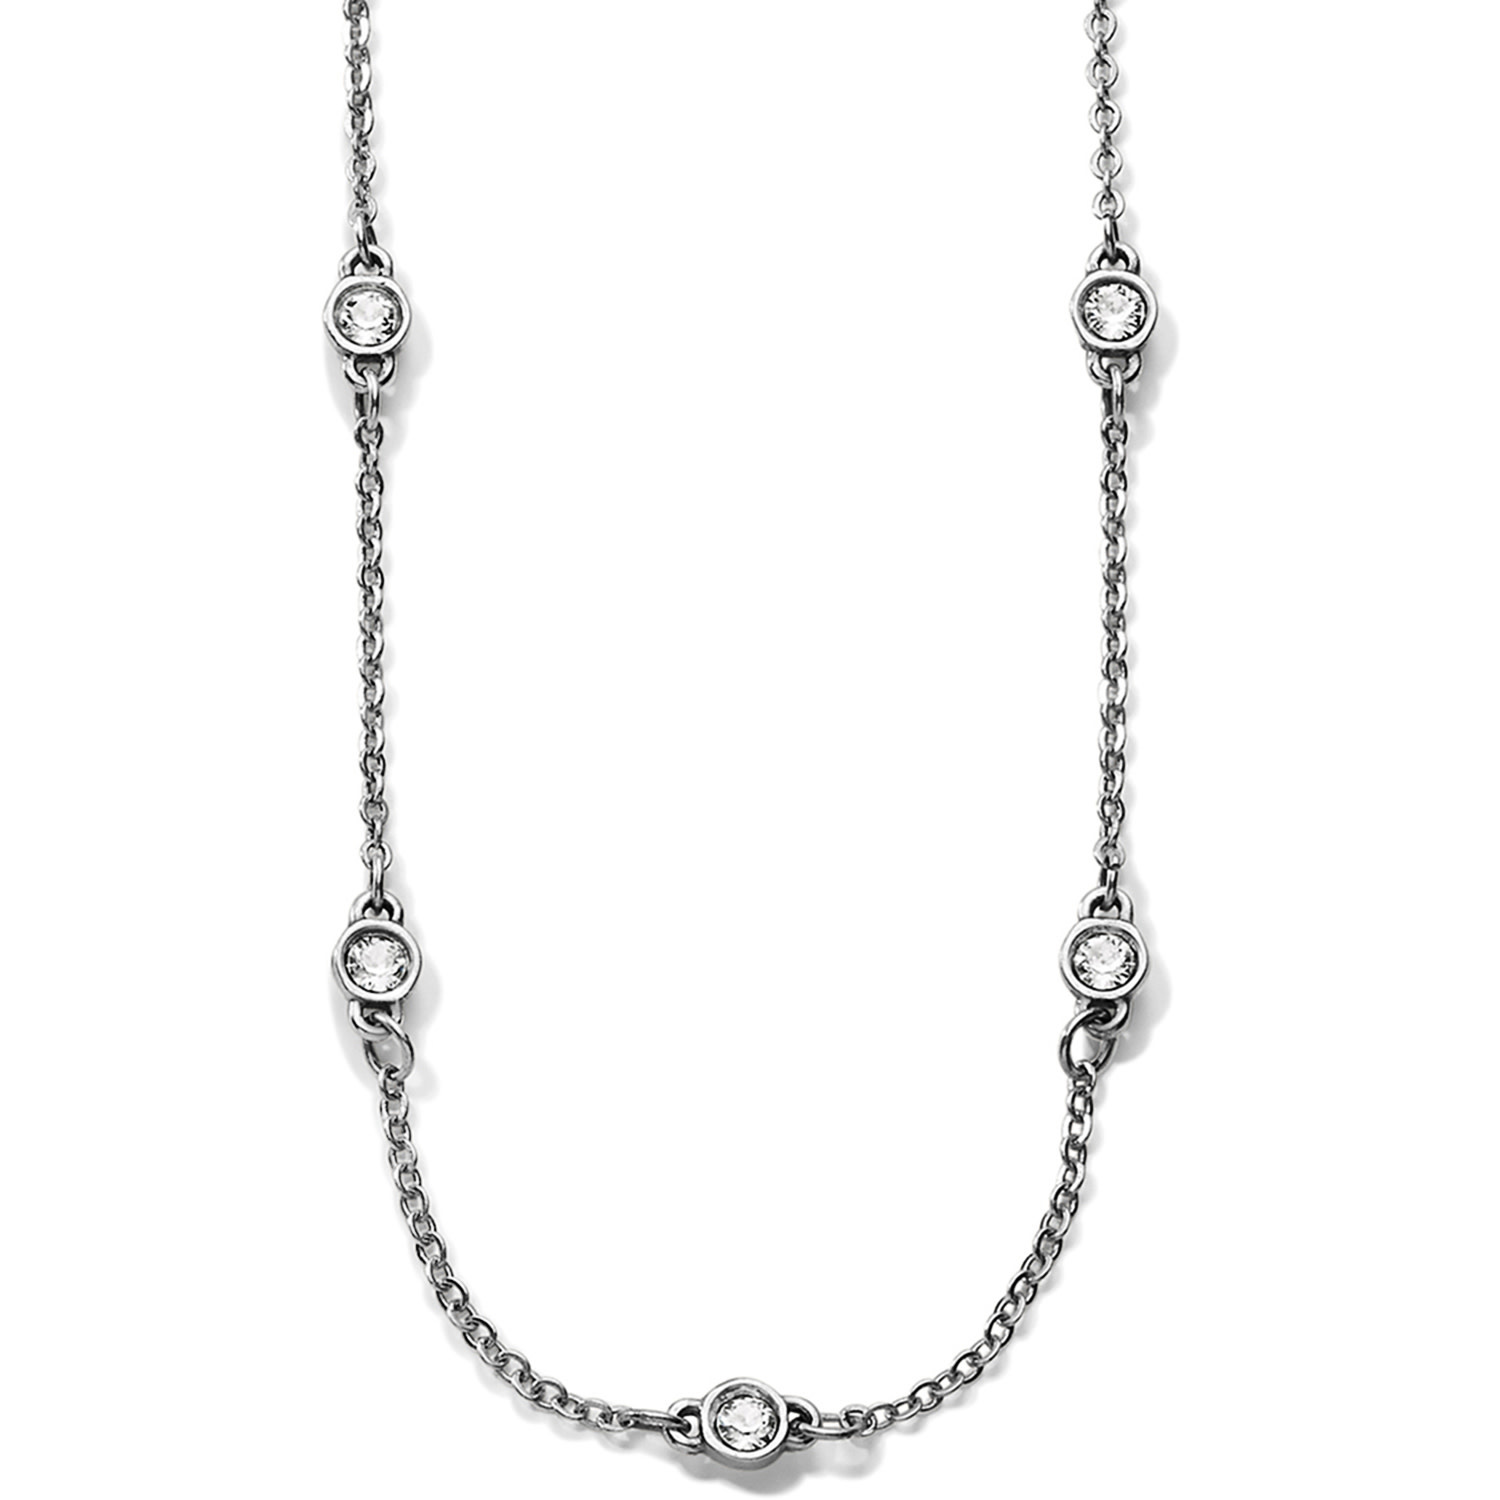 BRIGHTON ILLUMINA PETITE COLLAR NECKLACE